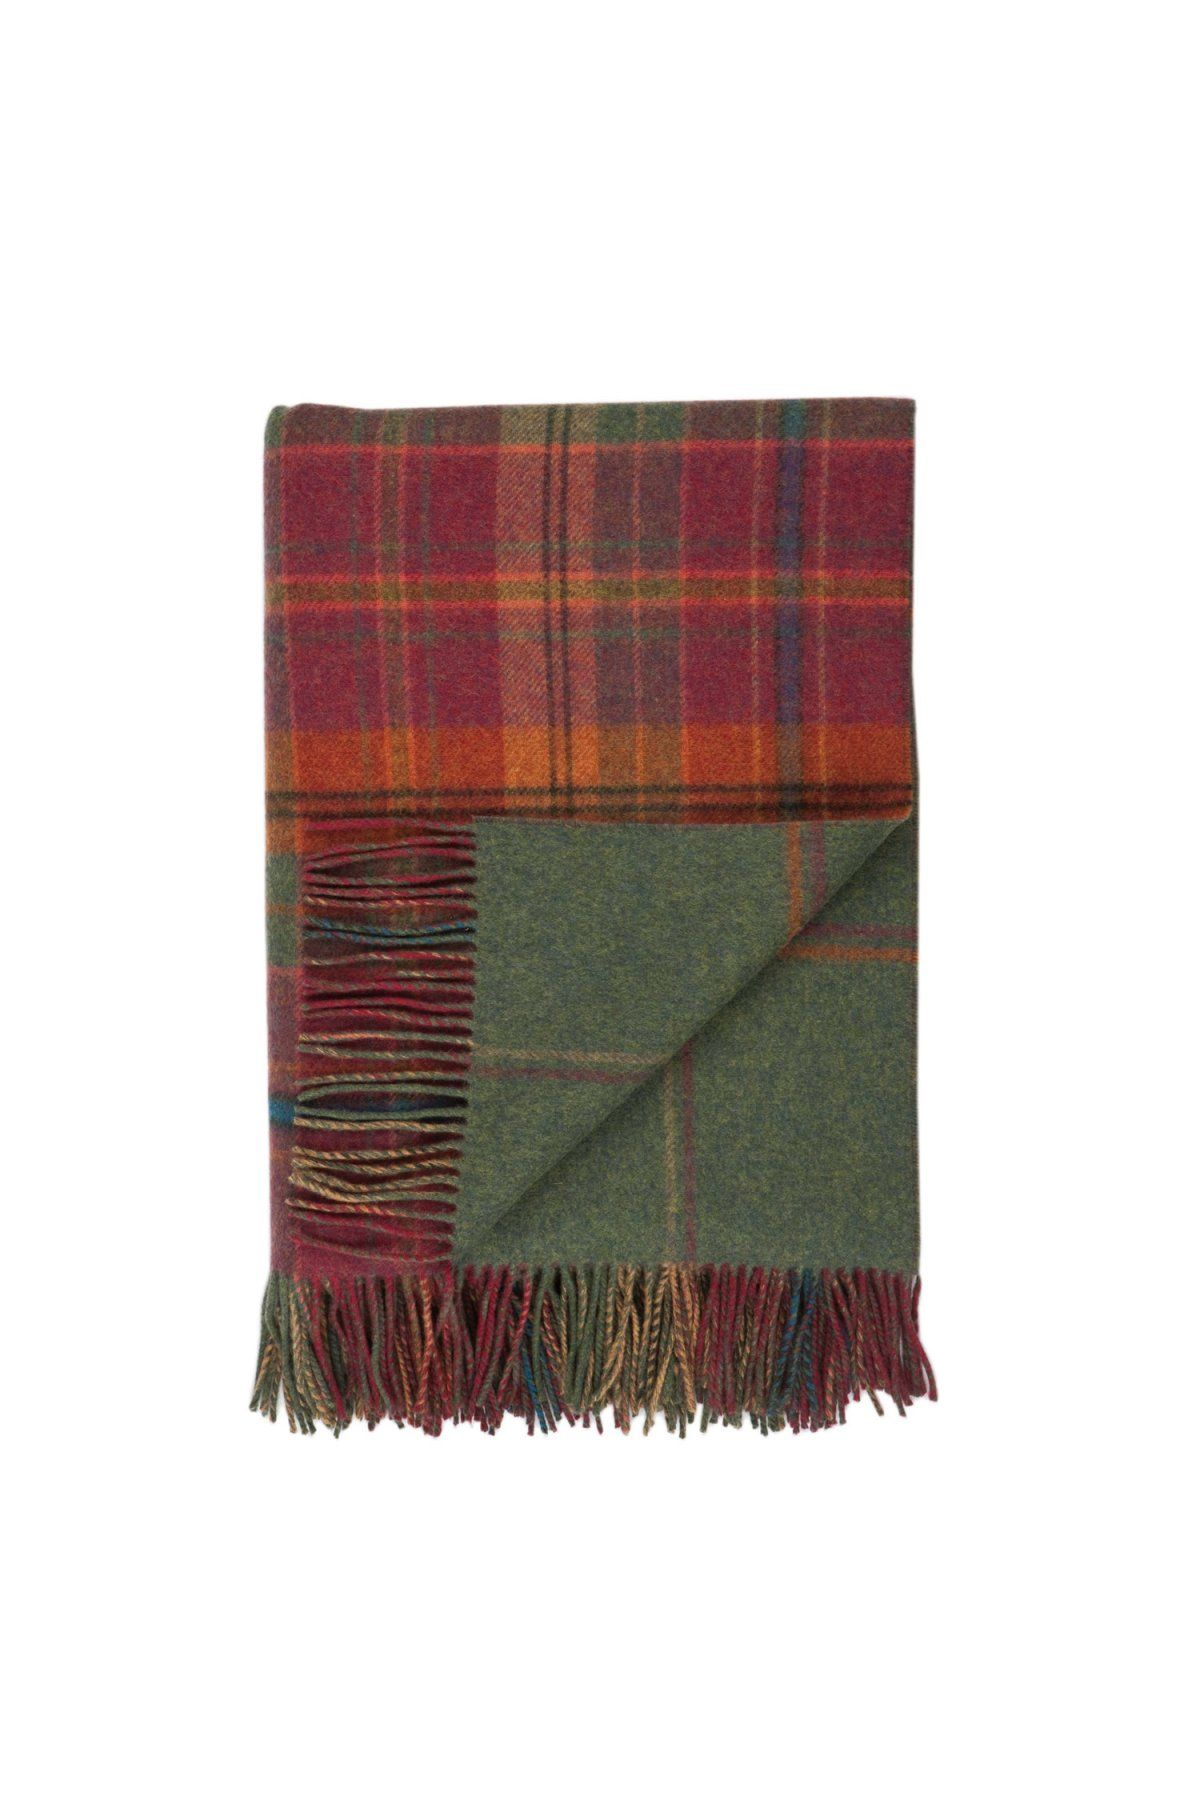 Dunoon Double Face Check Lambswool Throw In Red Lambswool Throw Plaid Throw Plaid Throw Blanket